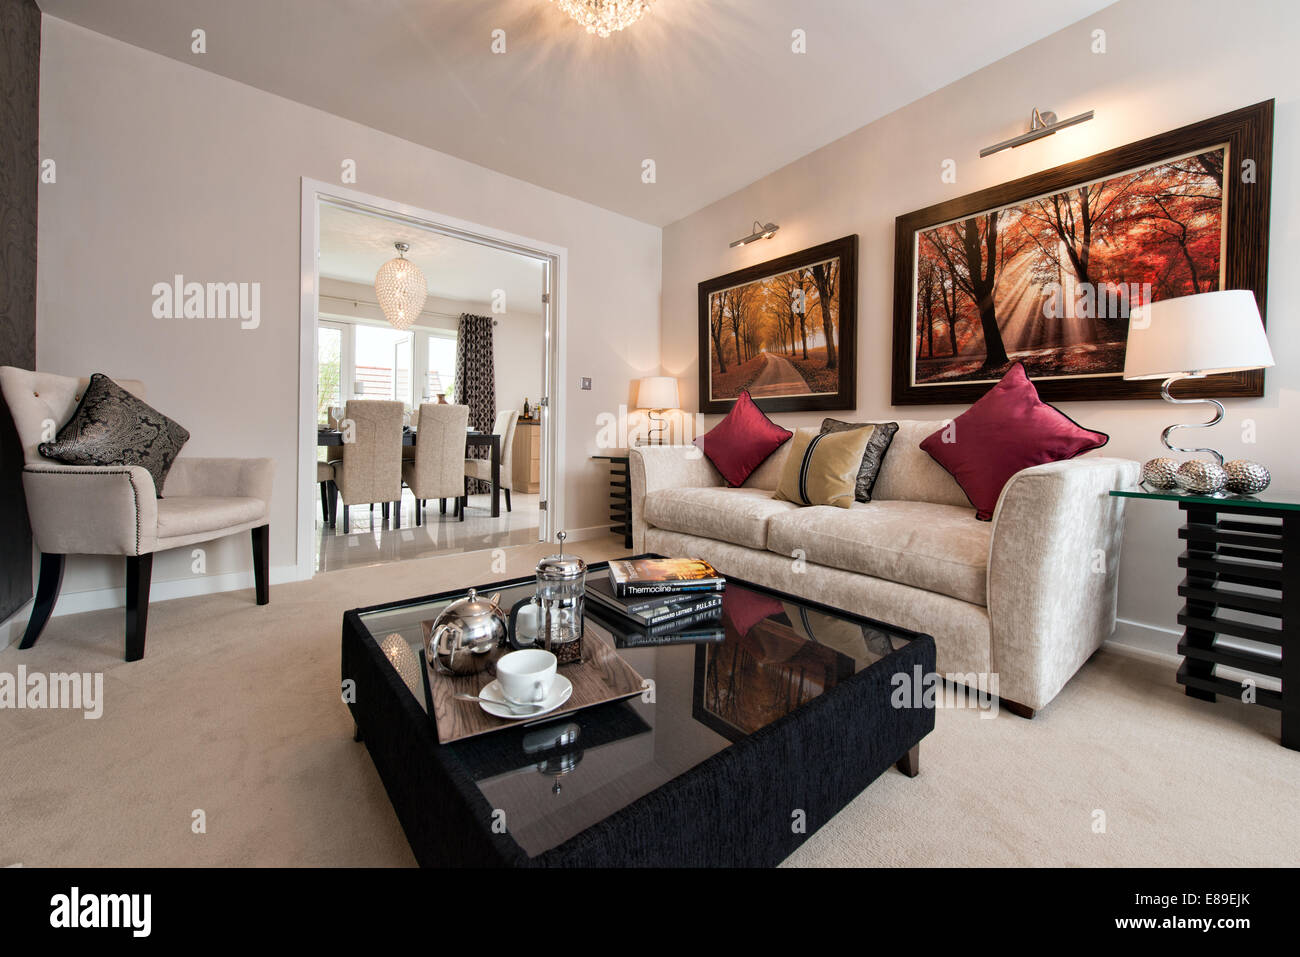 The living room of a persimmon homes show home on a for Show home living room designs